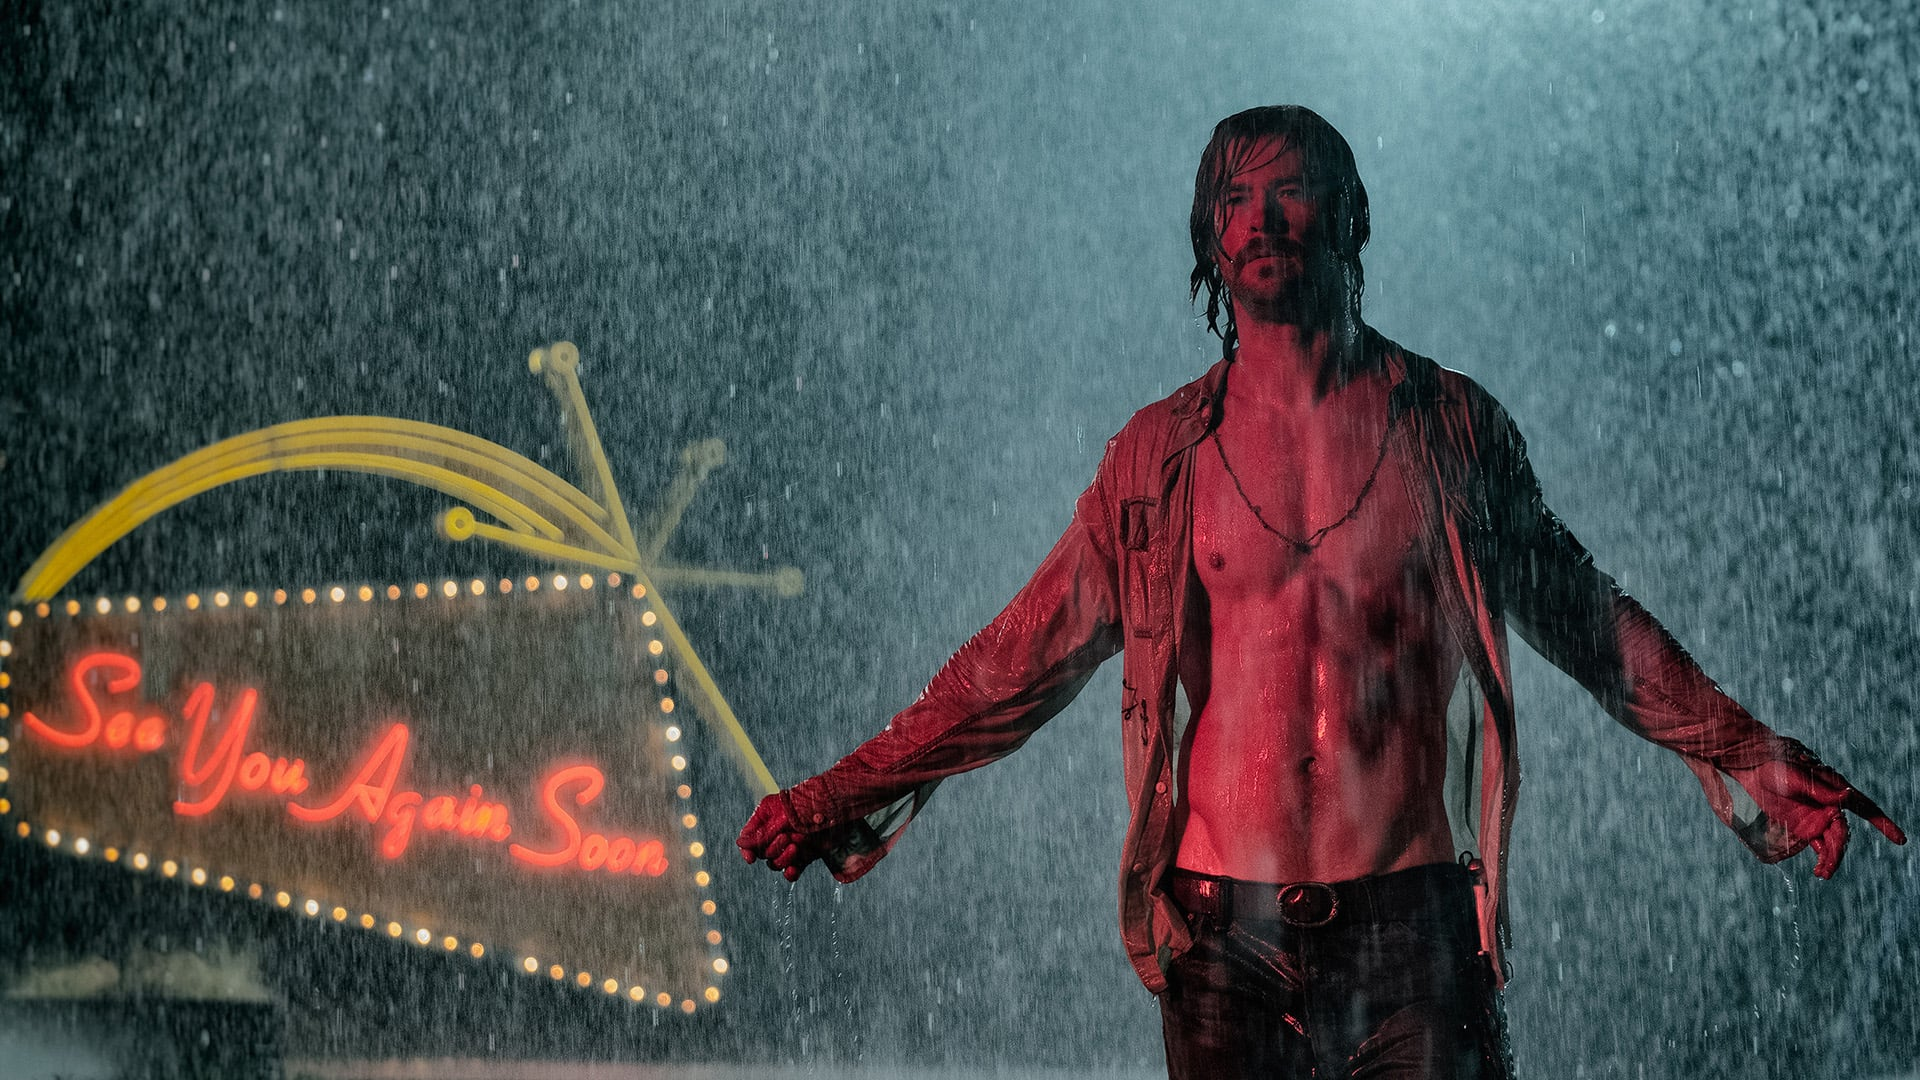 Still from Bad Times at the El Royale